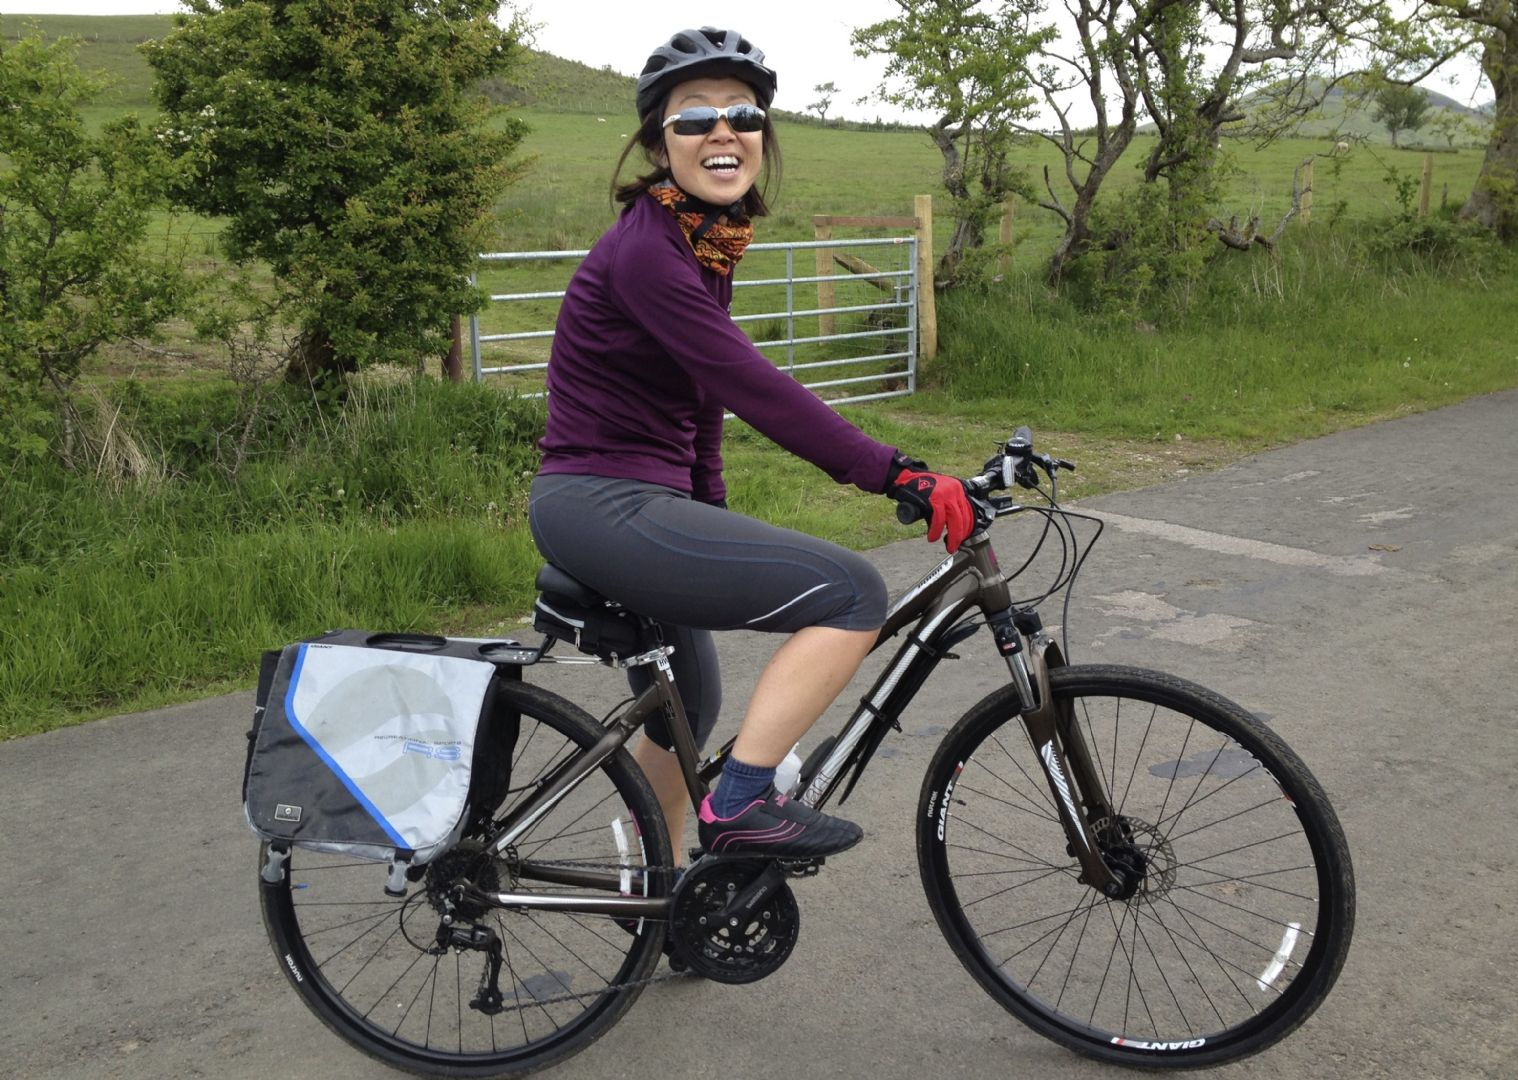 _Customer.103238.16263.jpg - UK - C2C - Coast to Coast - Supported Leisure Cycling Holiday - Leisure Cycling